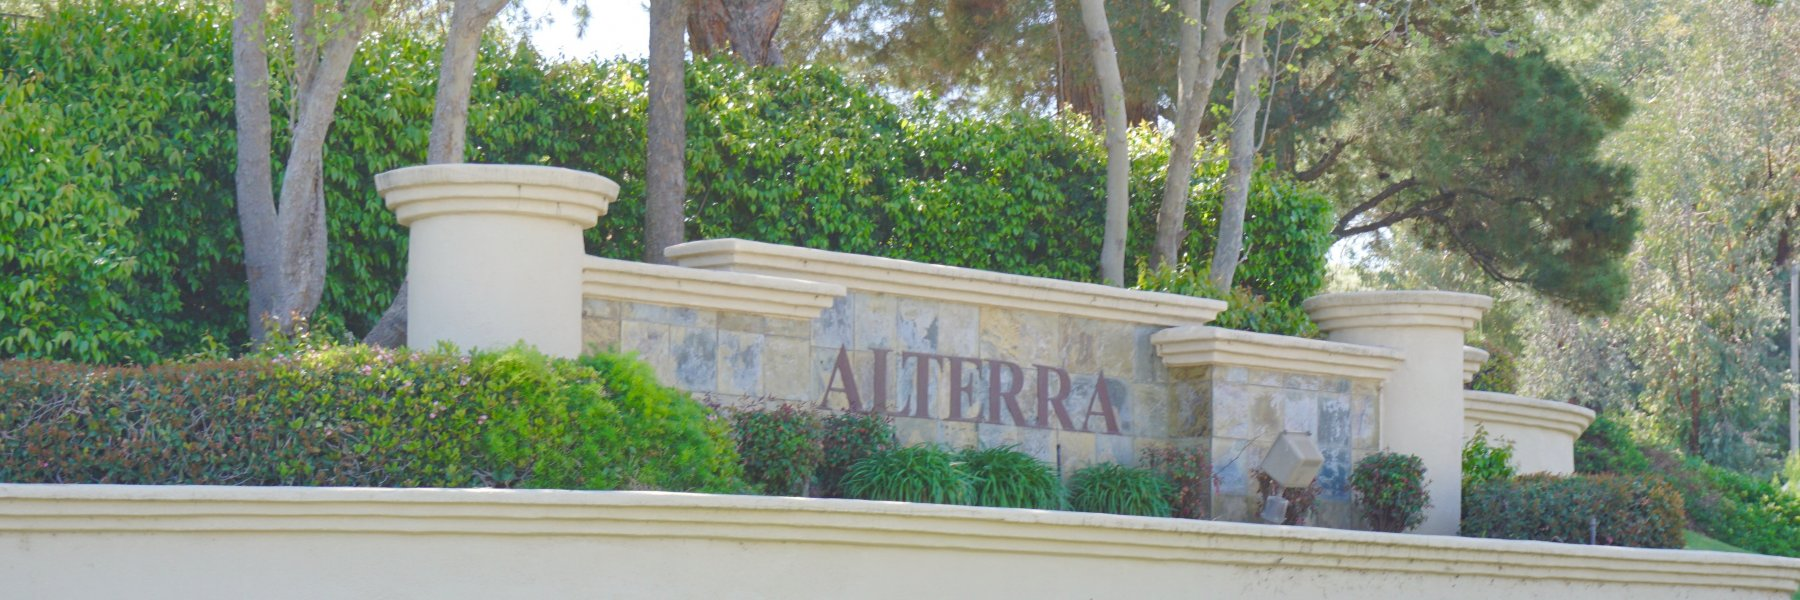 Alterra is a community of homes in Chino Hills California